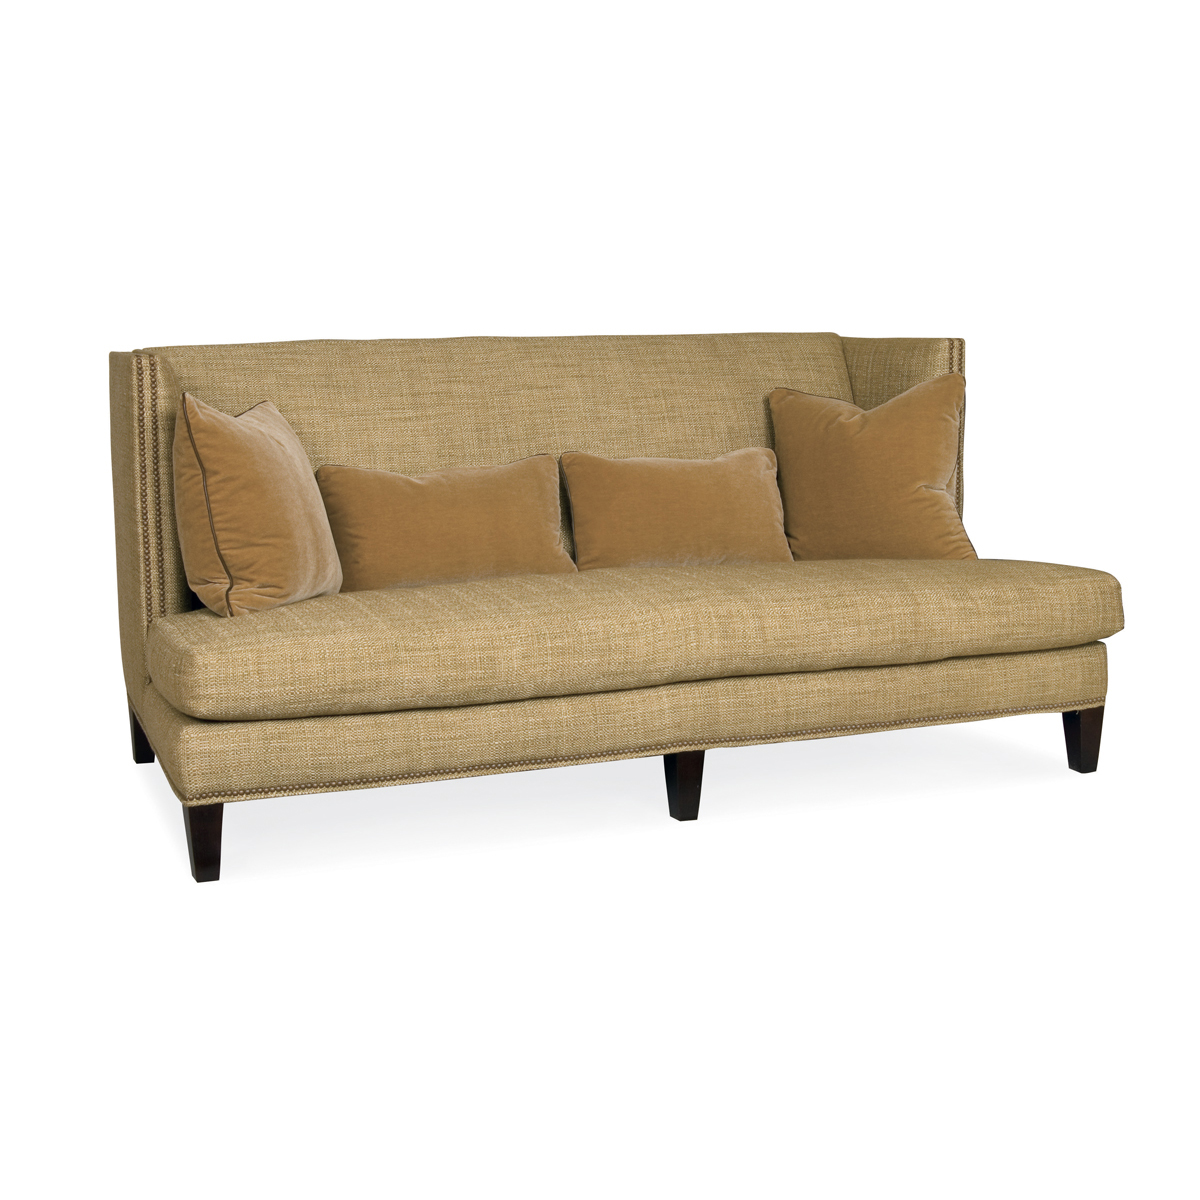 Series_upholstered_sofa_4800_Lee_Industires.jpg